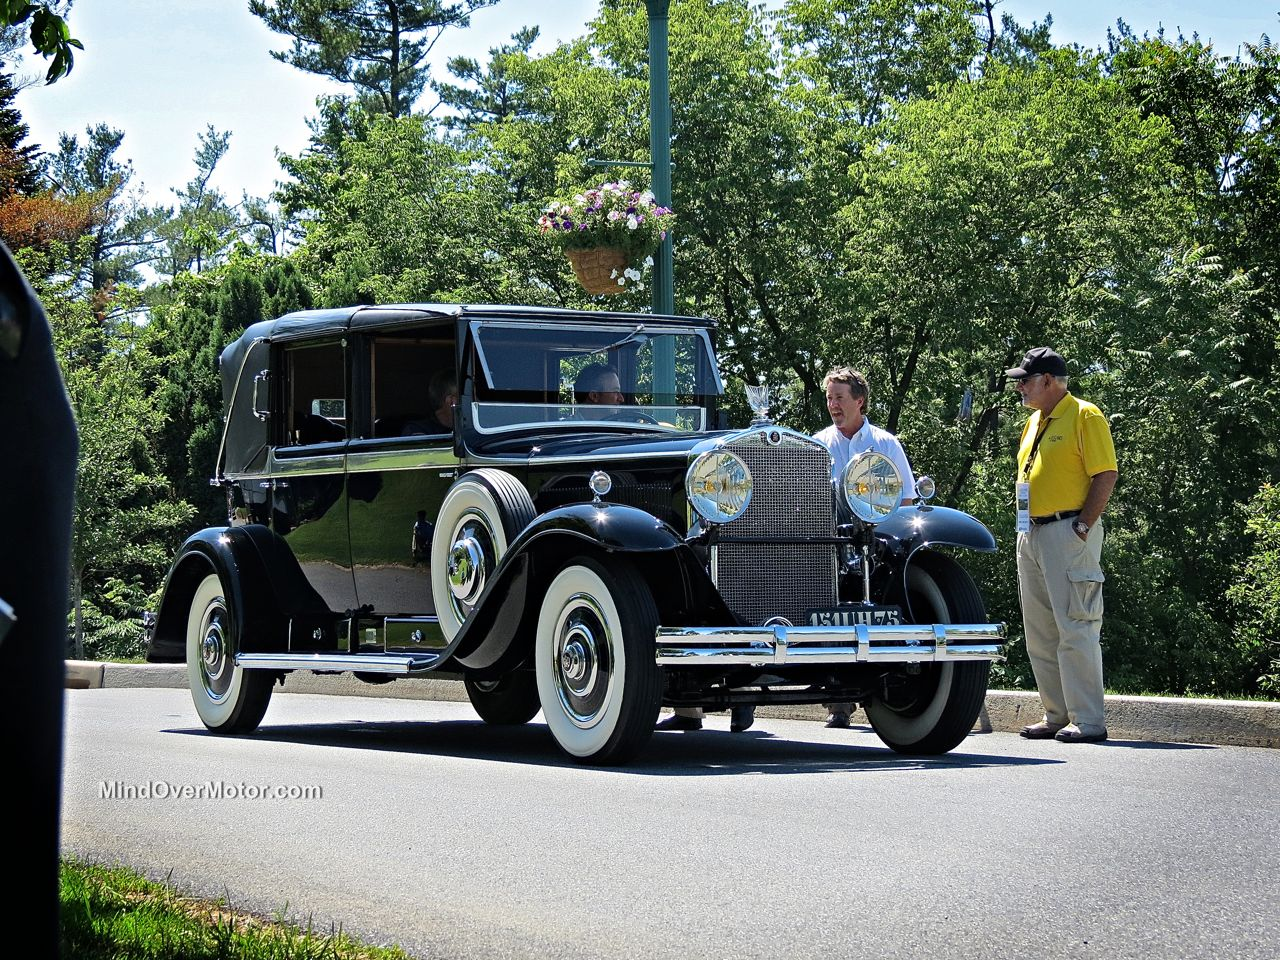 1930 Cadillac Series 353 Cabriolet built for the Rothschild family